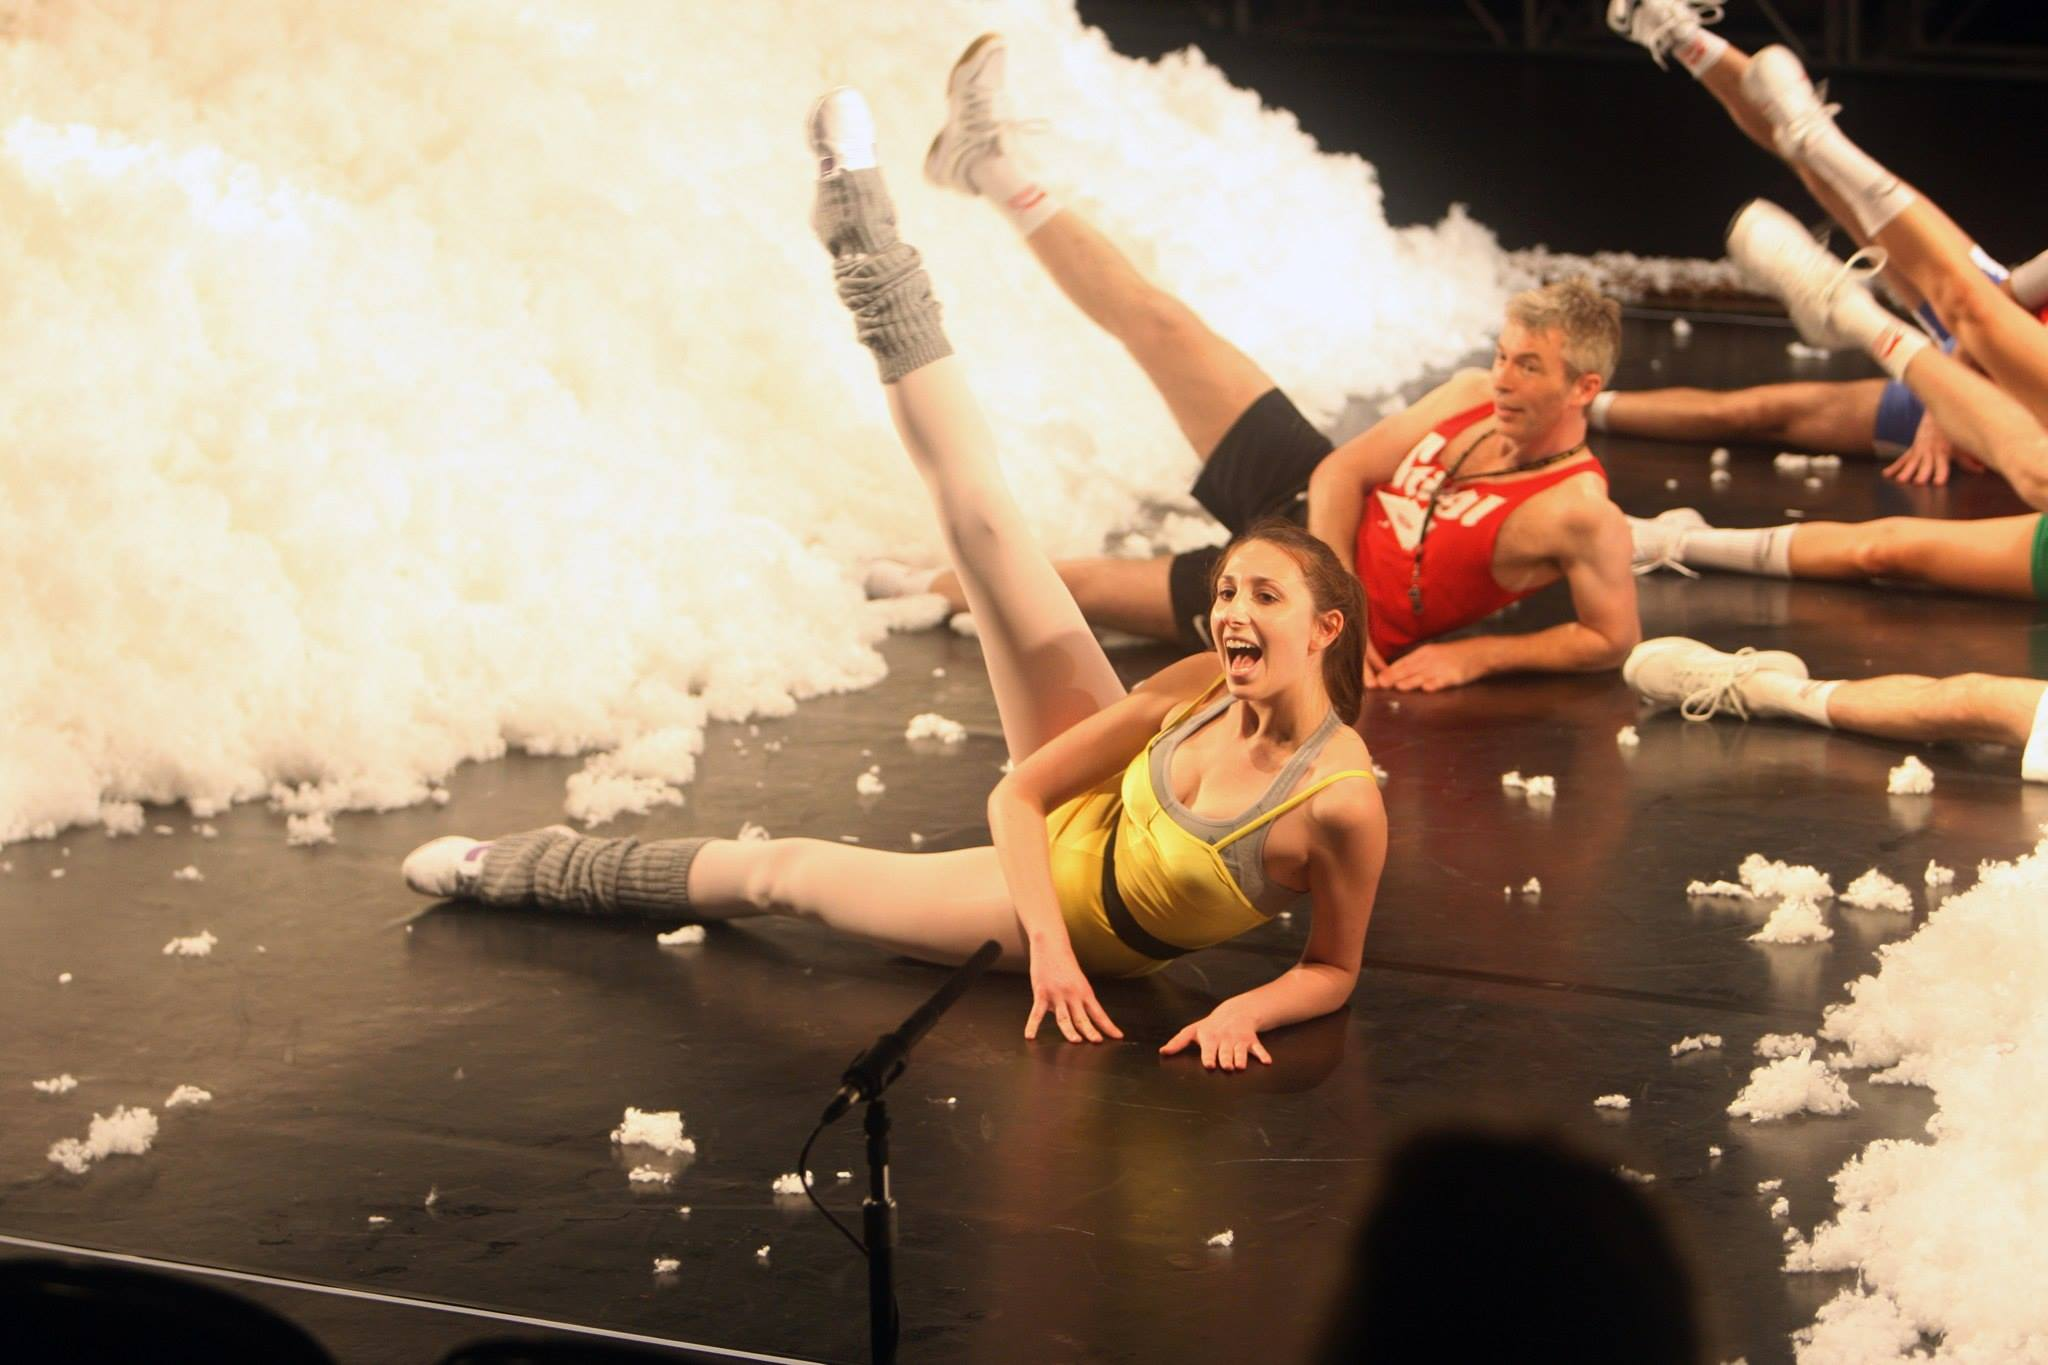 Nina Hatchwell's fitness video... quirky, funny and charged. - Sports Play by Elfriede Jelinek - UK & World Tour.